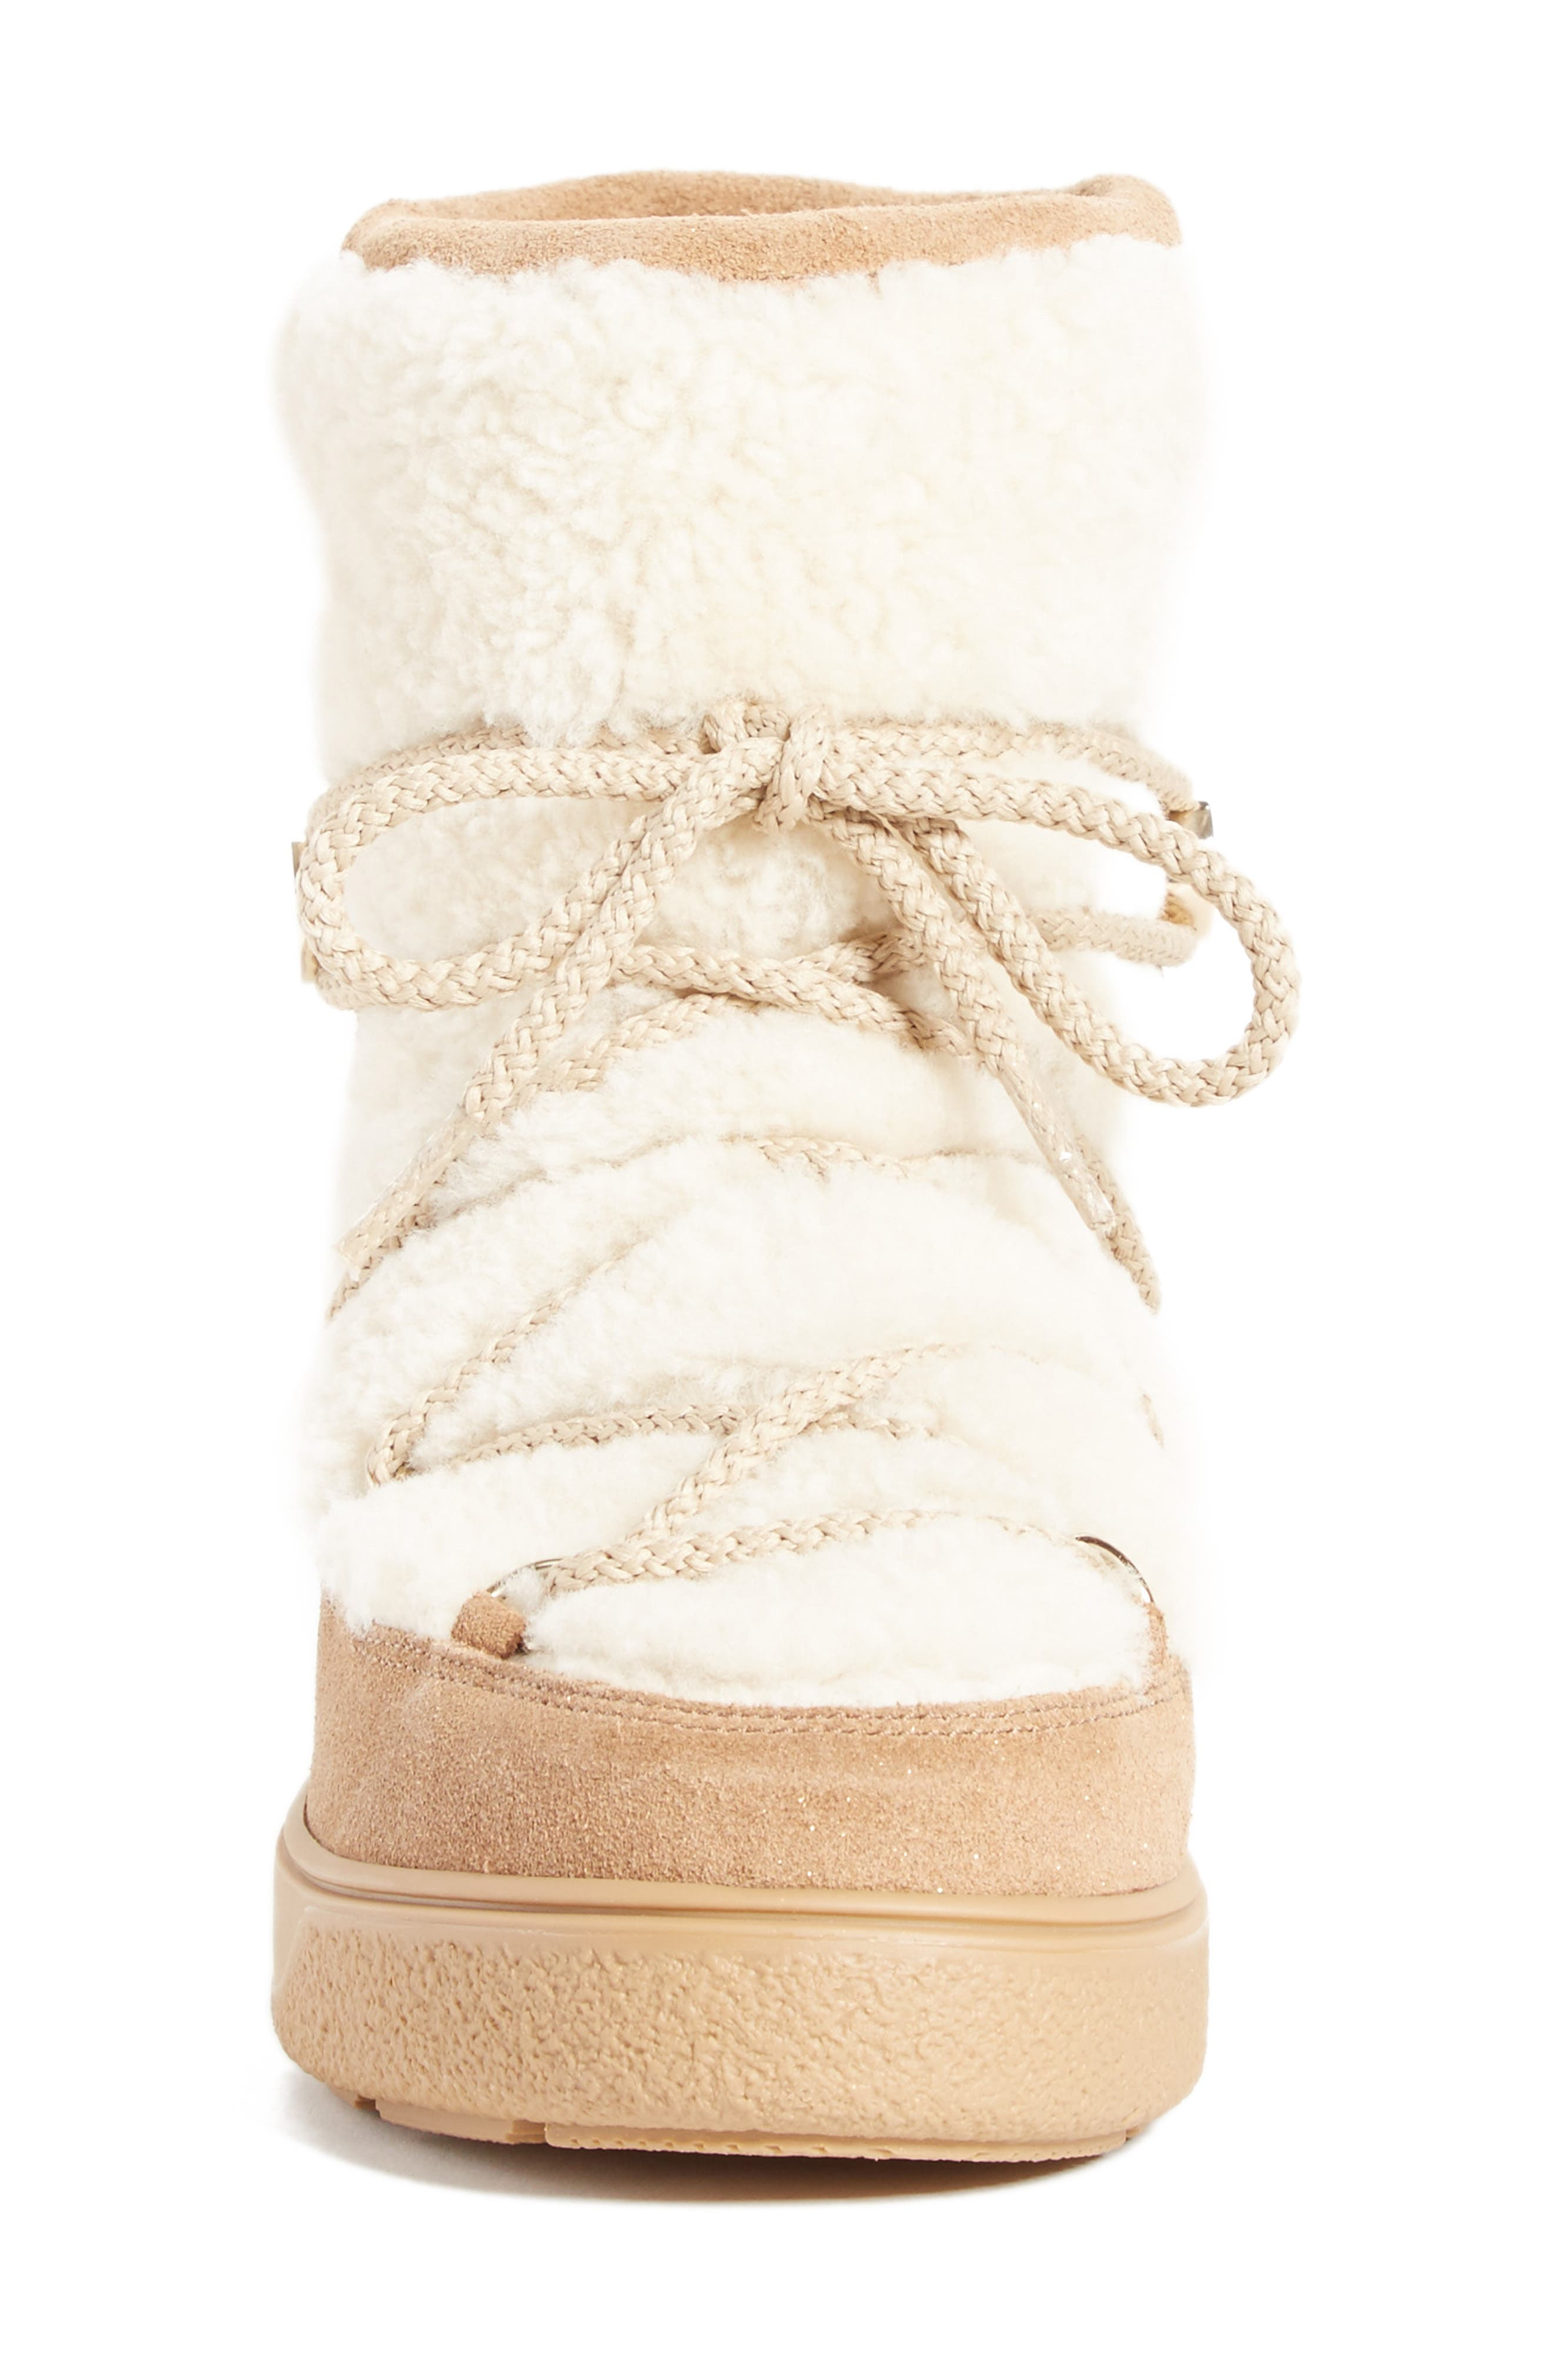 New Fanny Stivale Genuine Shearling Short Moon Boots,                             Alternate thumbnail 4, color,